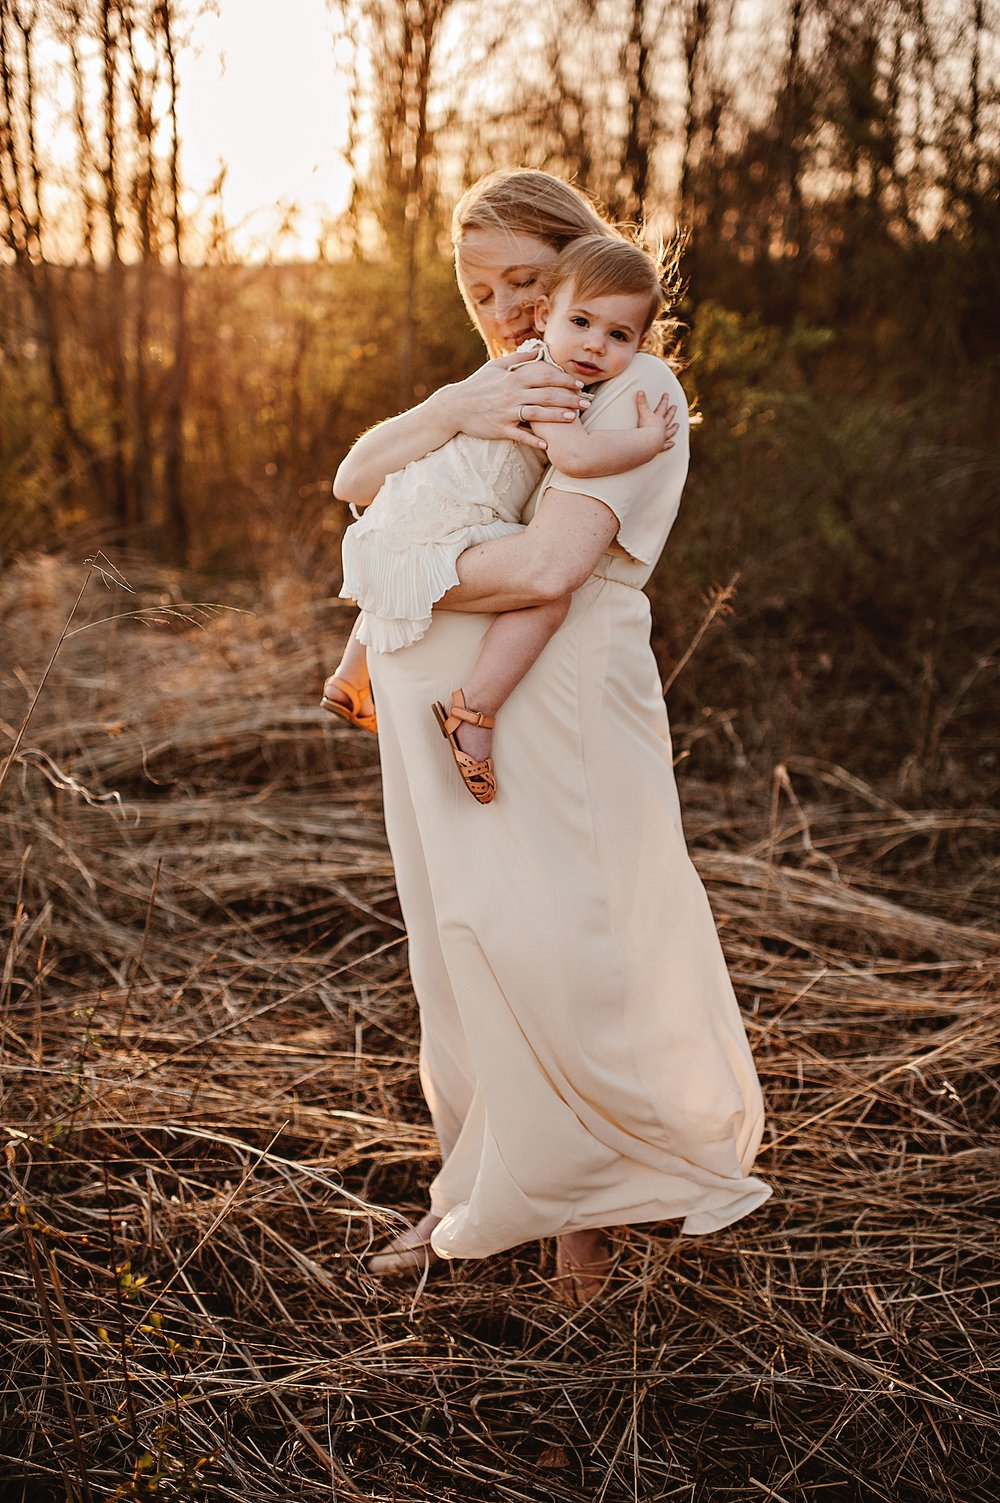 lauren-grayson-photography-portrait-artist-akron-cleveland-ohio-photographer-family-motherhood-fields-sunset-spring-photos_0231.jpg